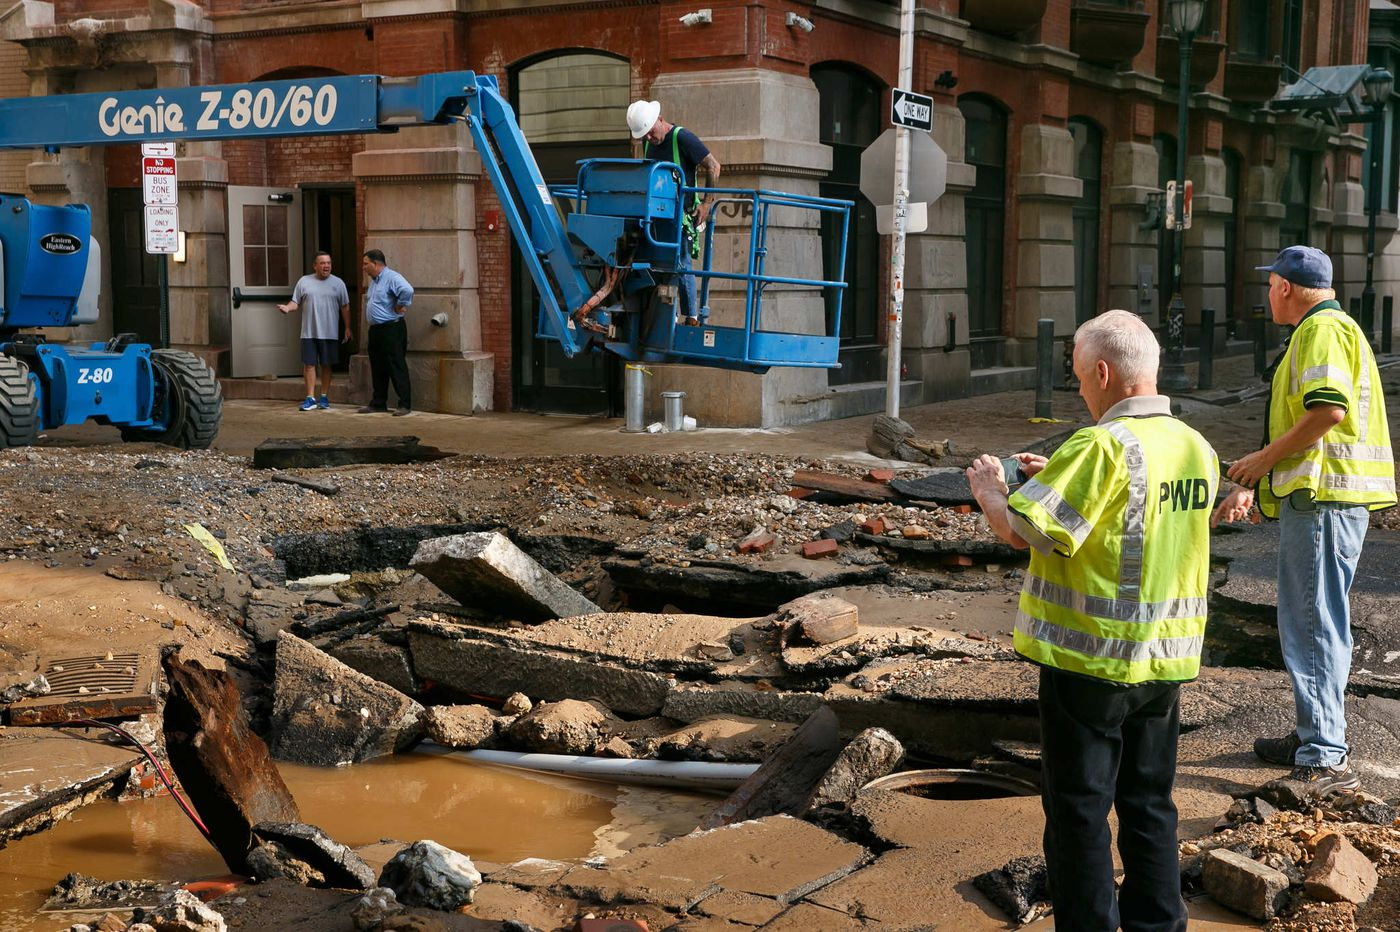 Cause of water main break that flooded Philadelphia's Center City unknown